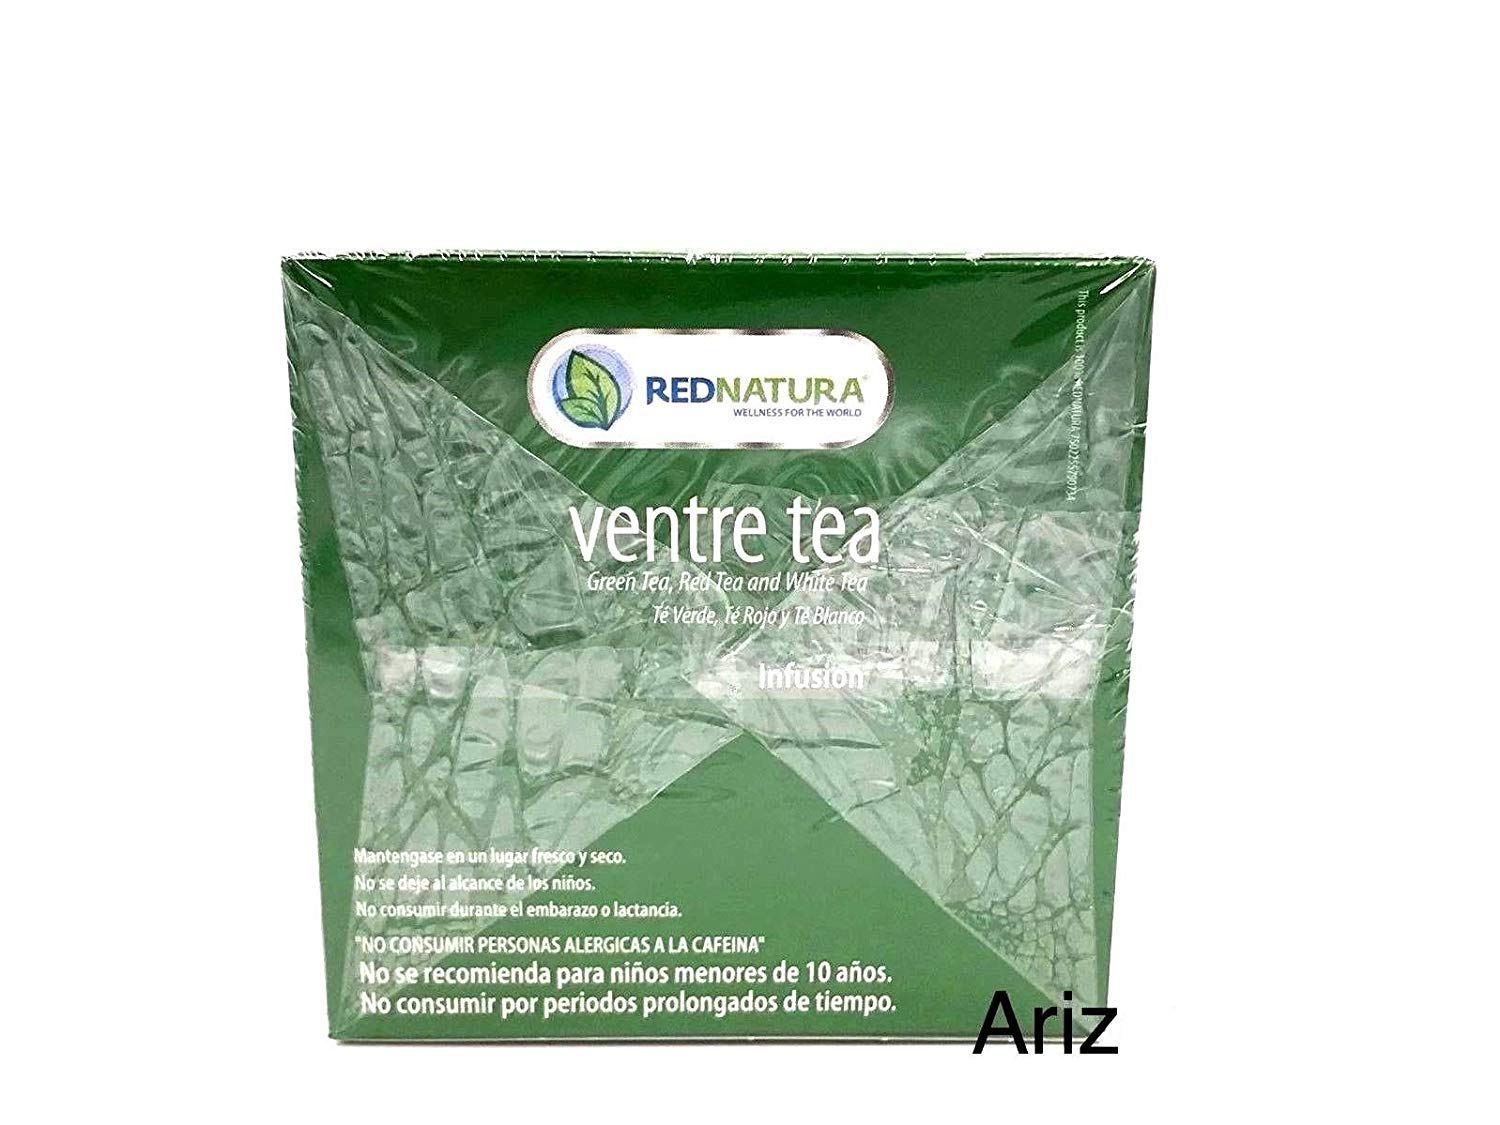 Amazon.com: Be Lax Tea Weight Loss Supplement - Red Natura Mexican Version - 30 Day Supply: Health & Personal Care